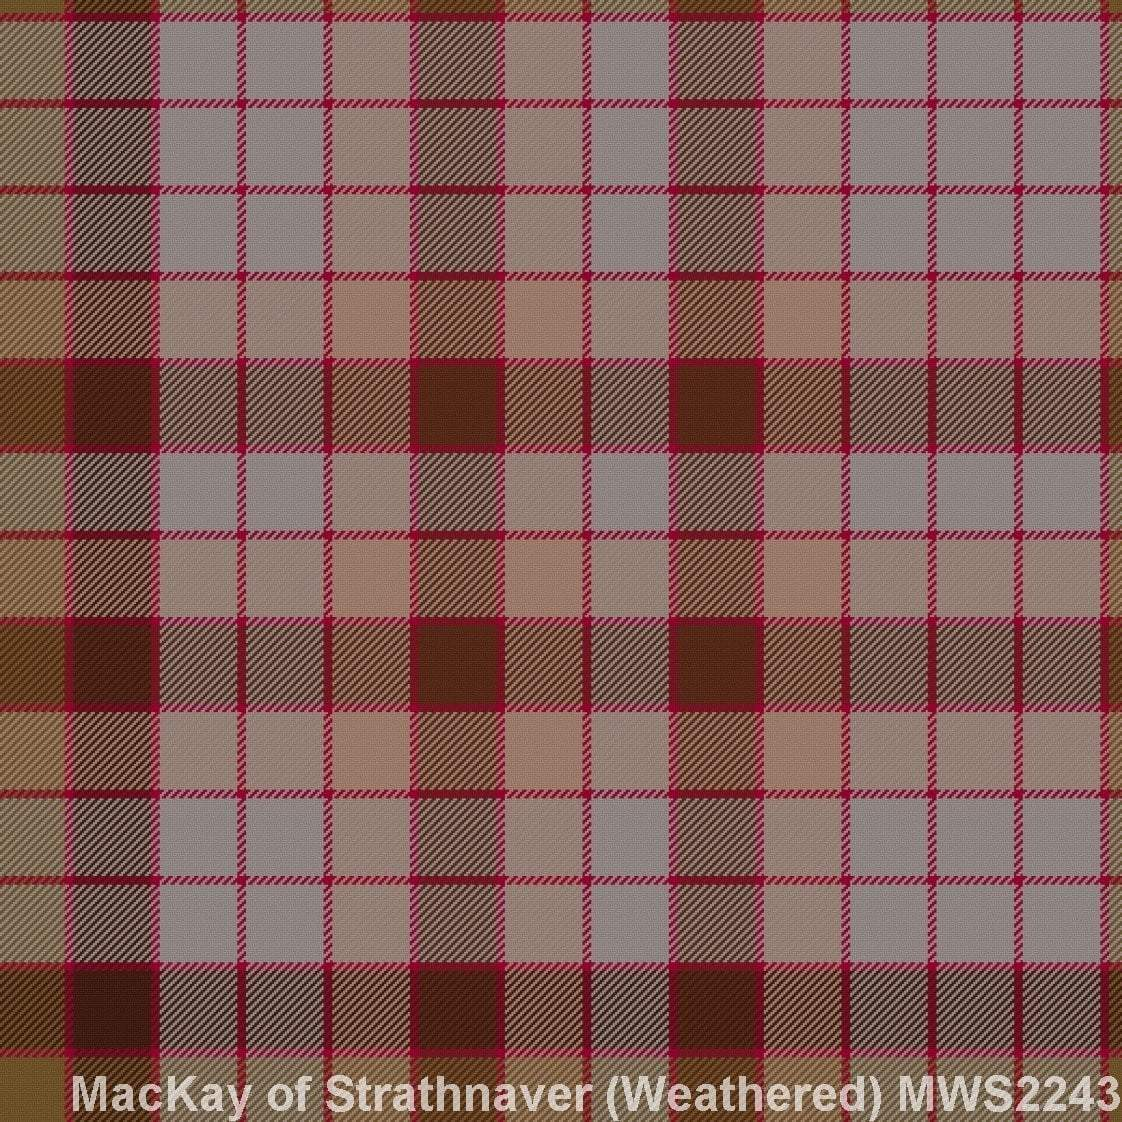 MacKay of Strathnaver Weathered